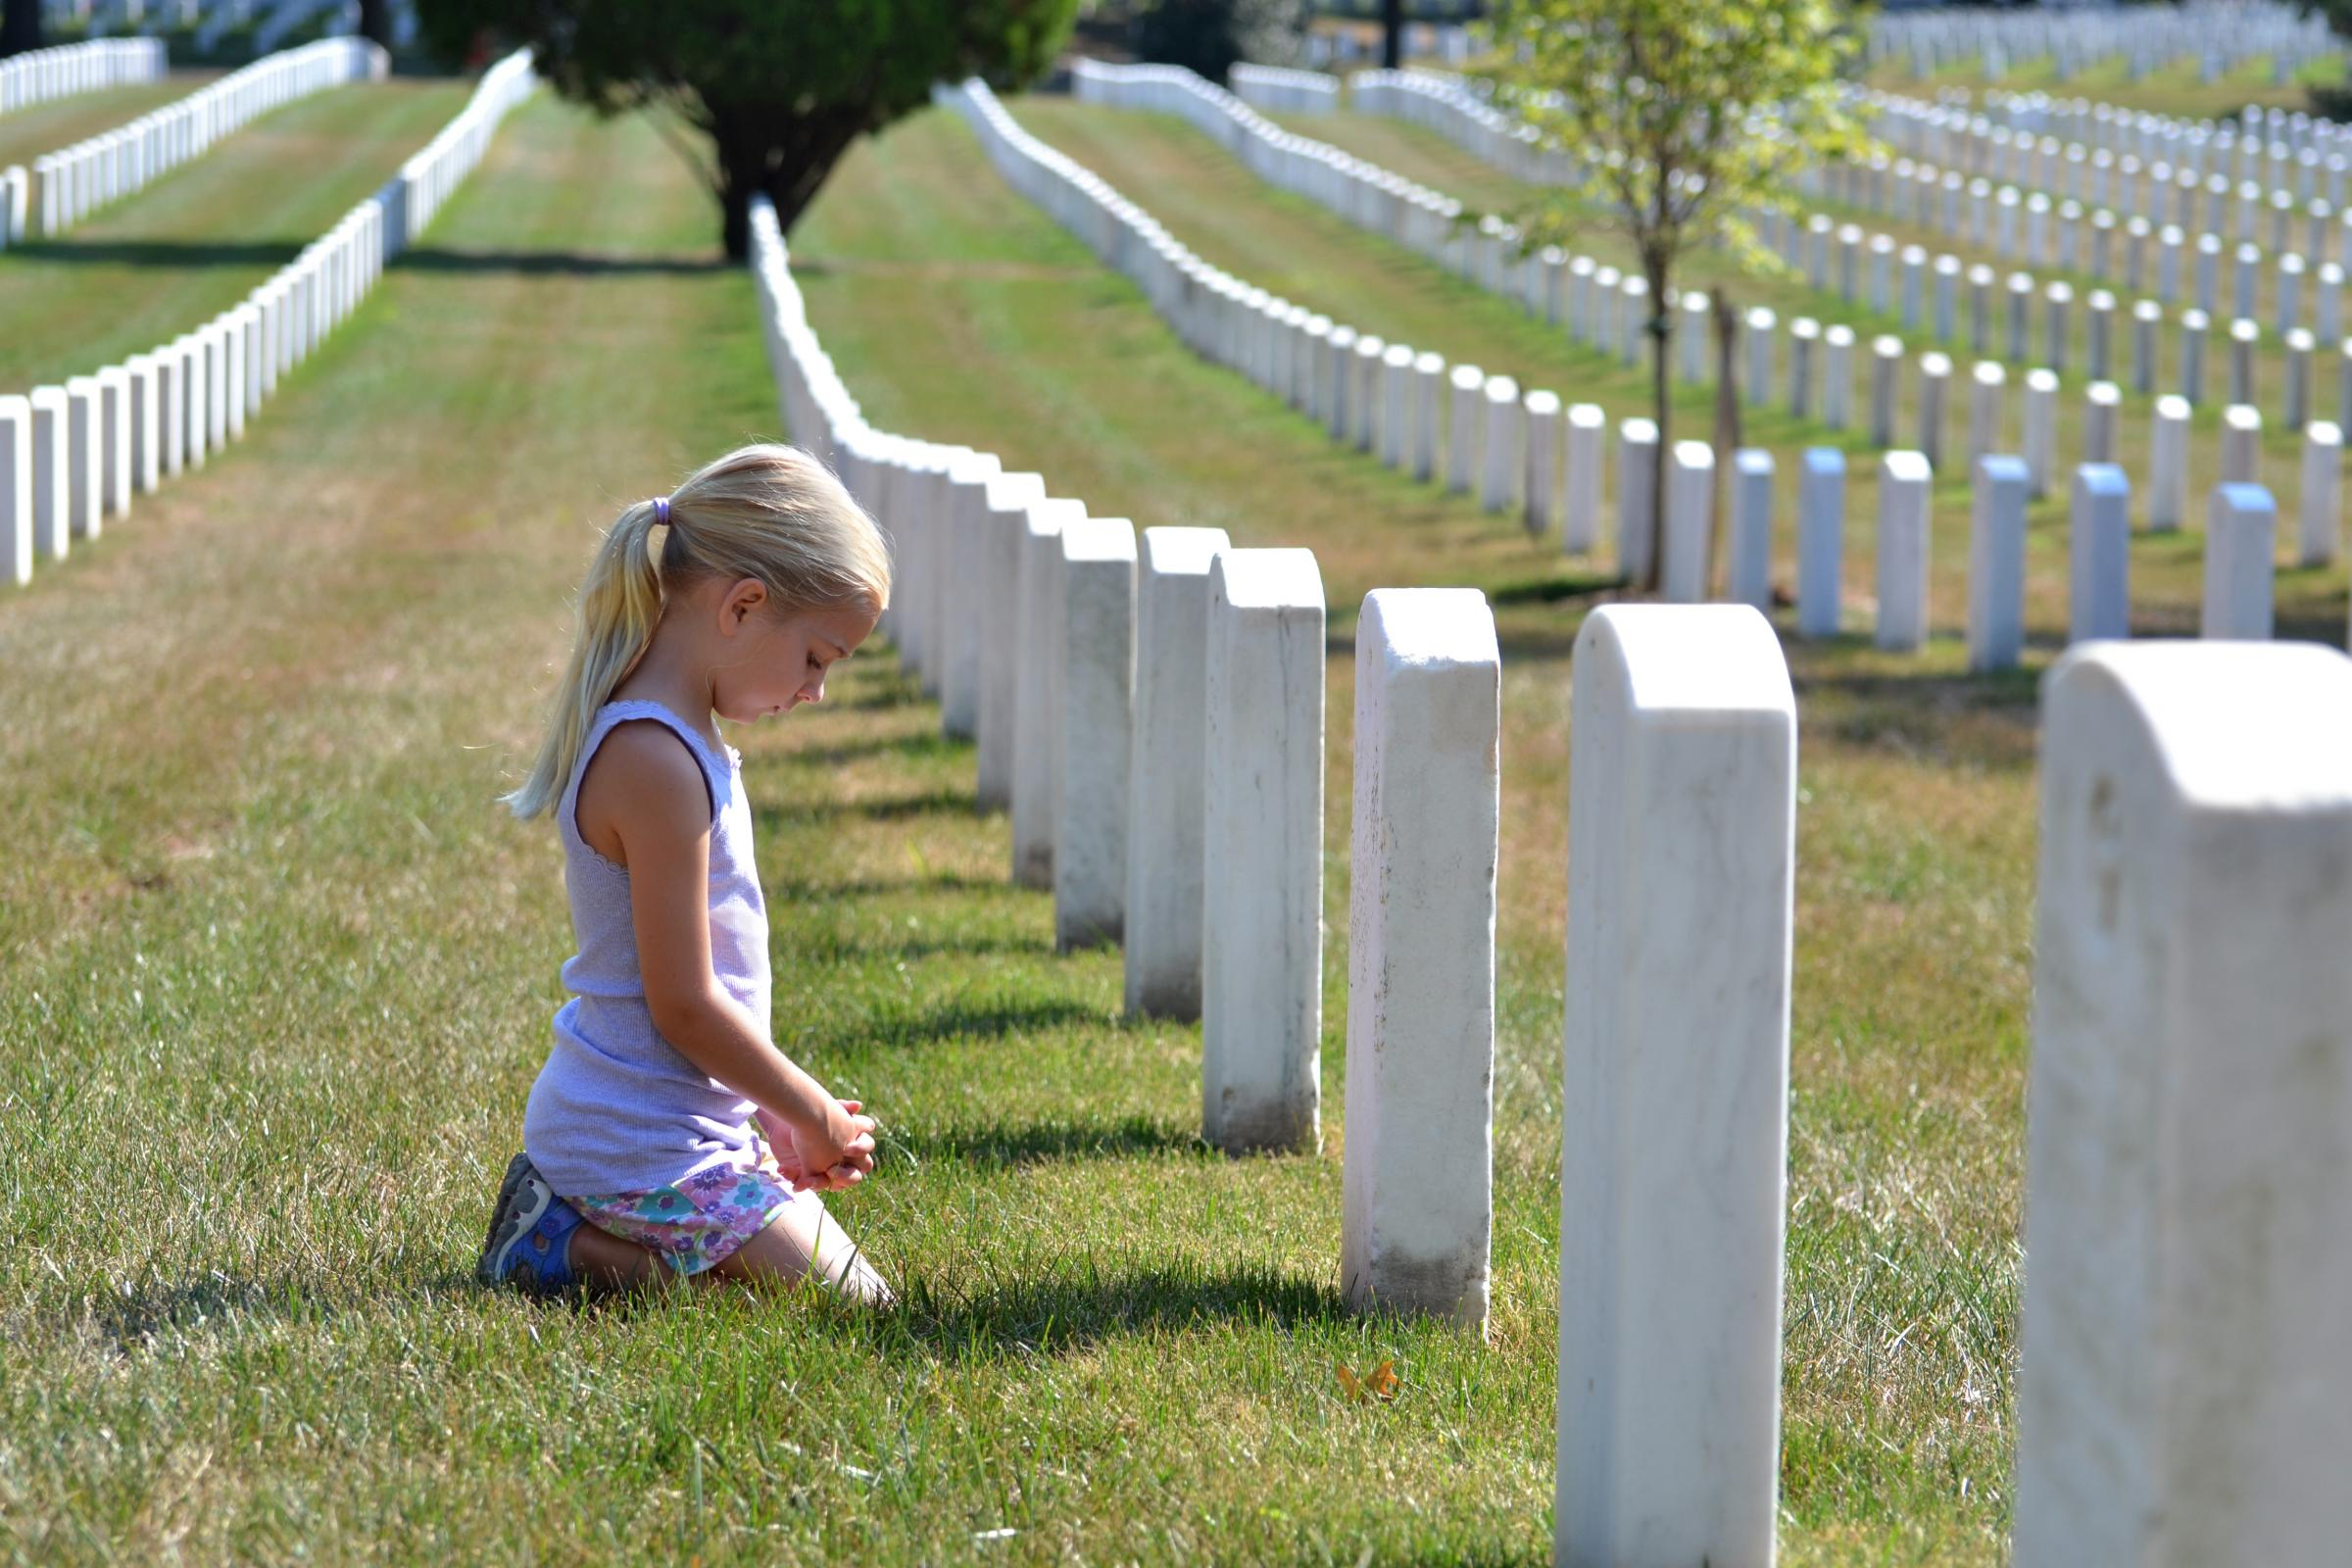 young girl in cemetery kneeling at grave of dead loved one